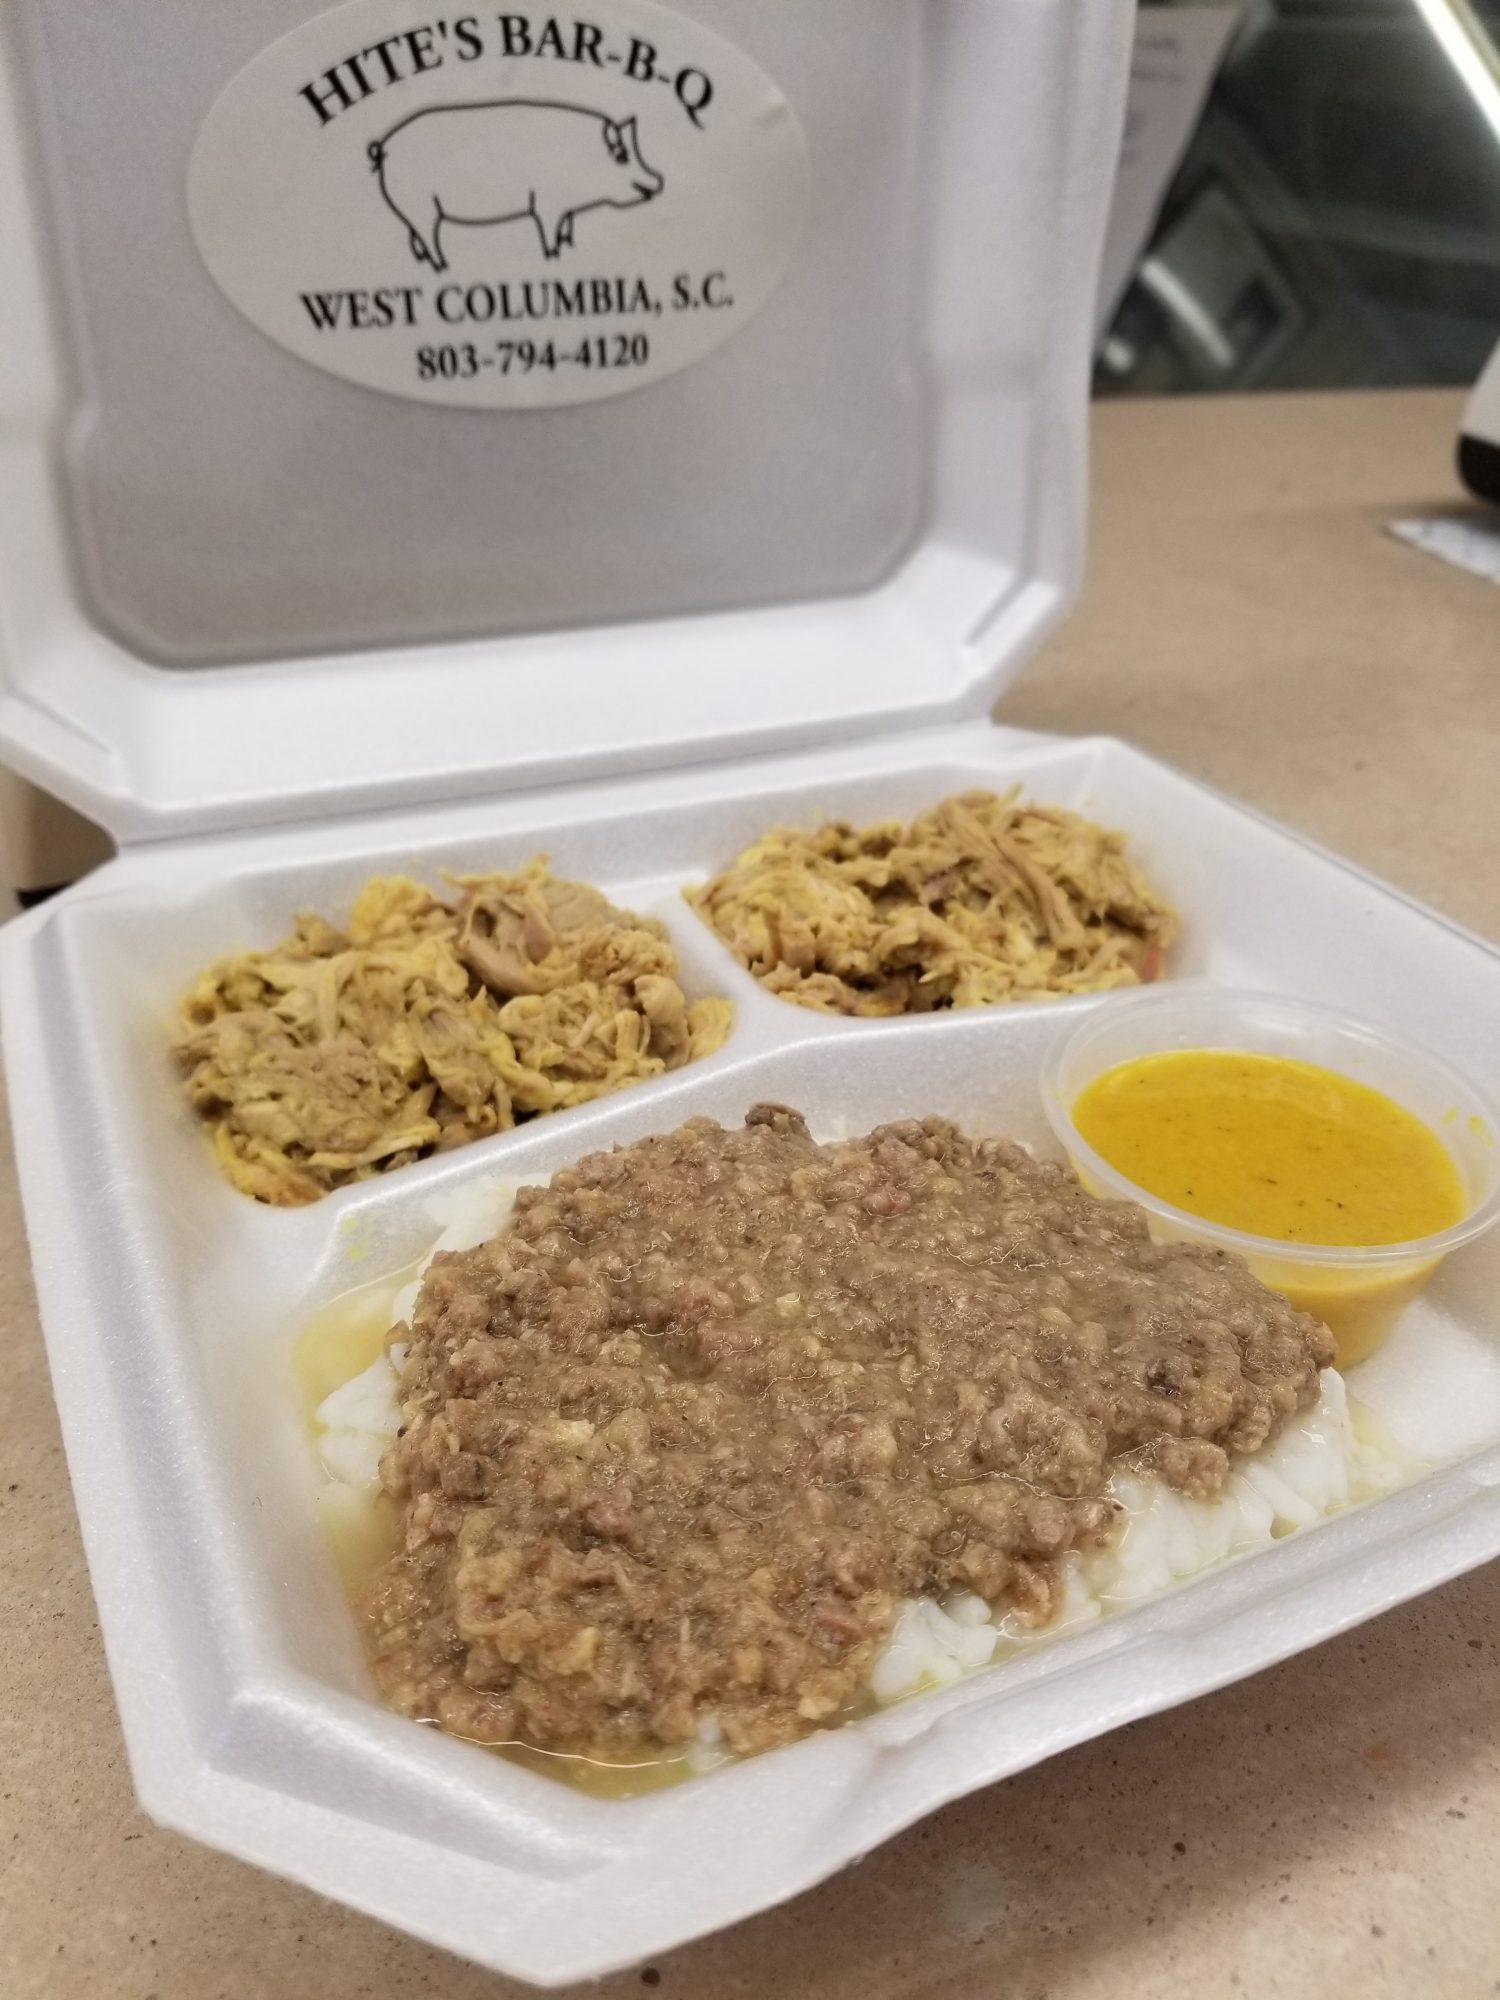 Hite's Bar-B-Q Hash and Rice